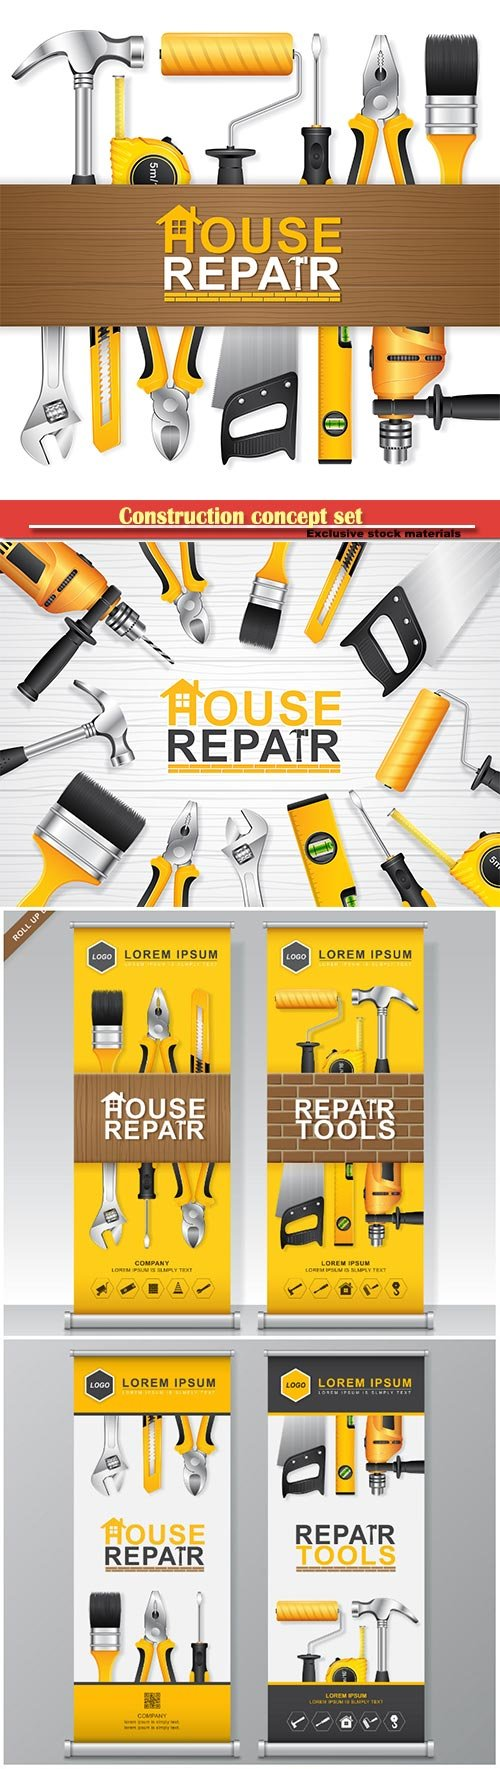 Construction concept set all of tools supplies for house repair builder